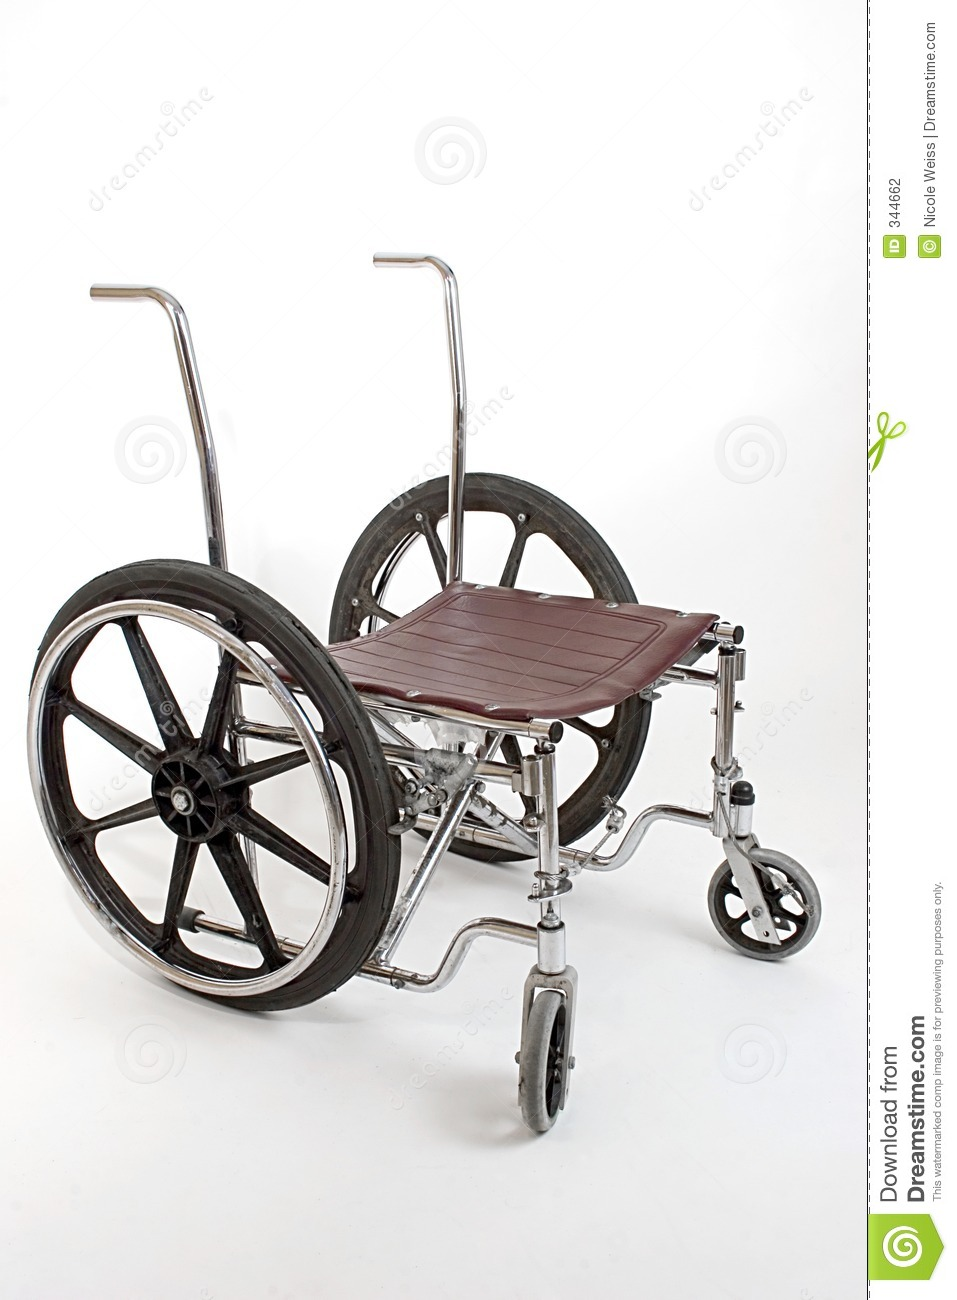 Broken Down Car With Warning Triangle Royalty Free Stock: Broken Down Wheelchair Stock Photography